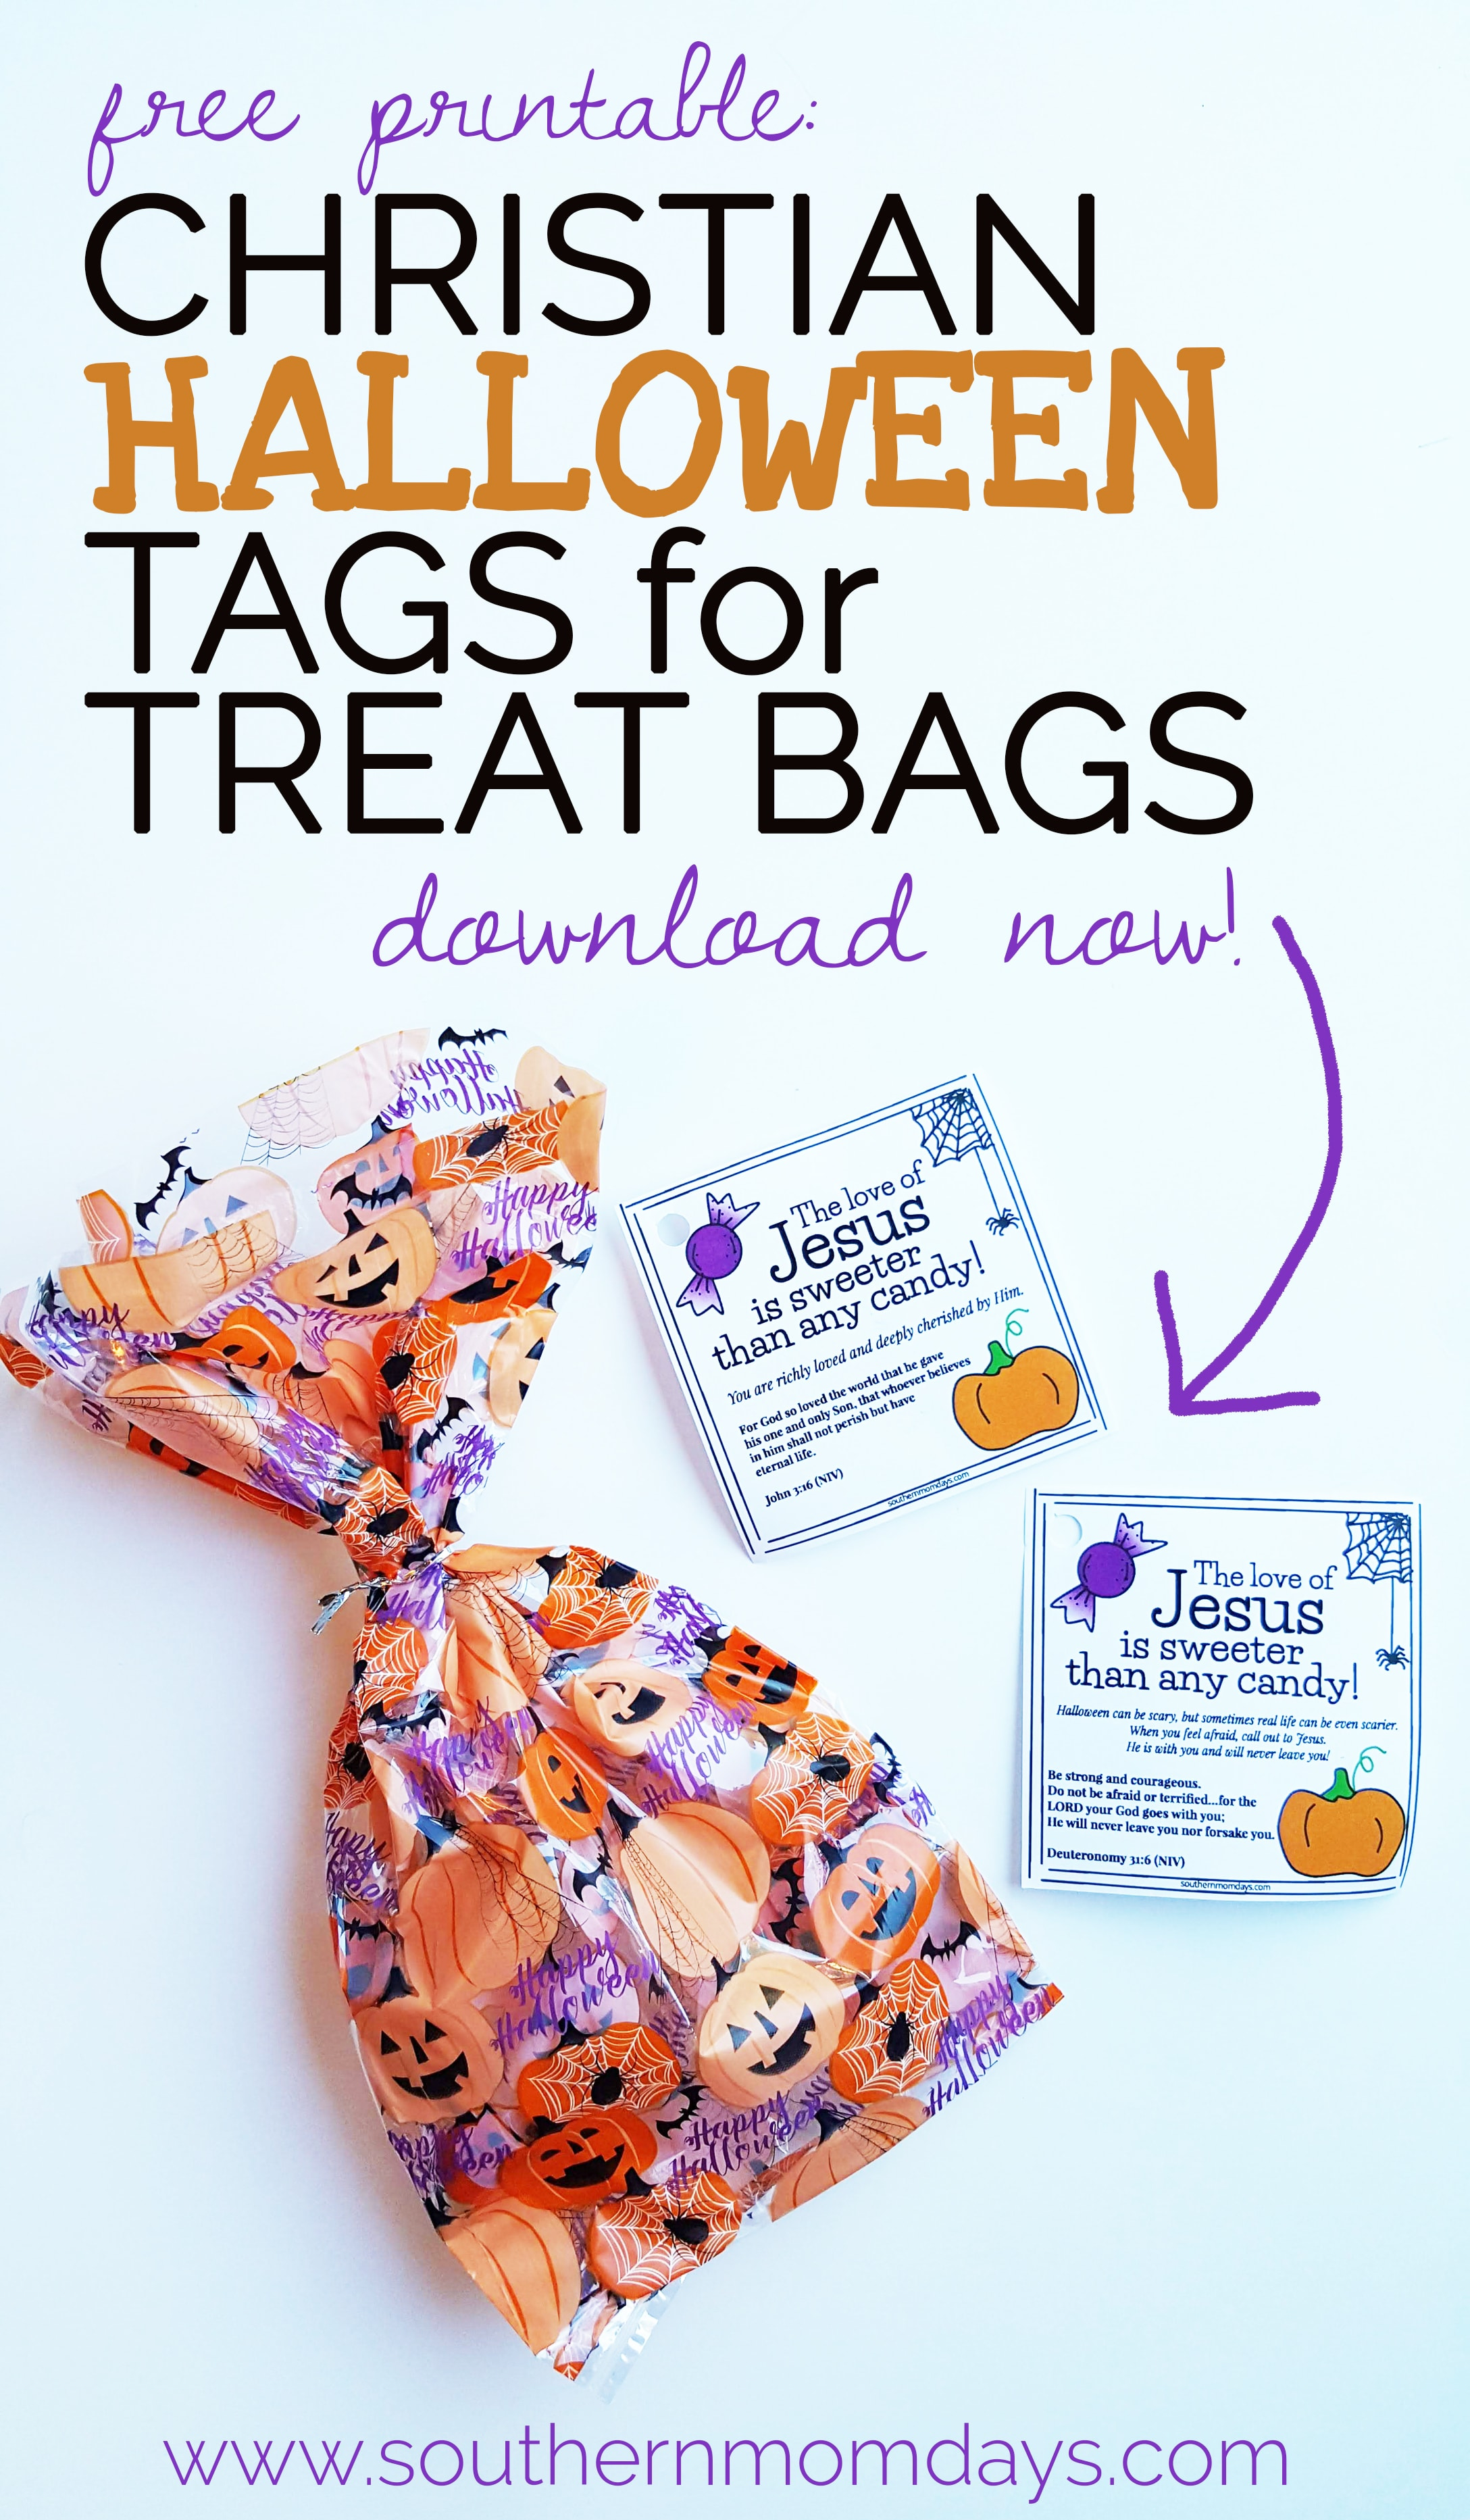 free printable: christian halloween tags for treat bags - southern